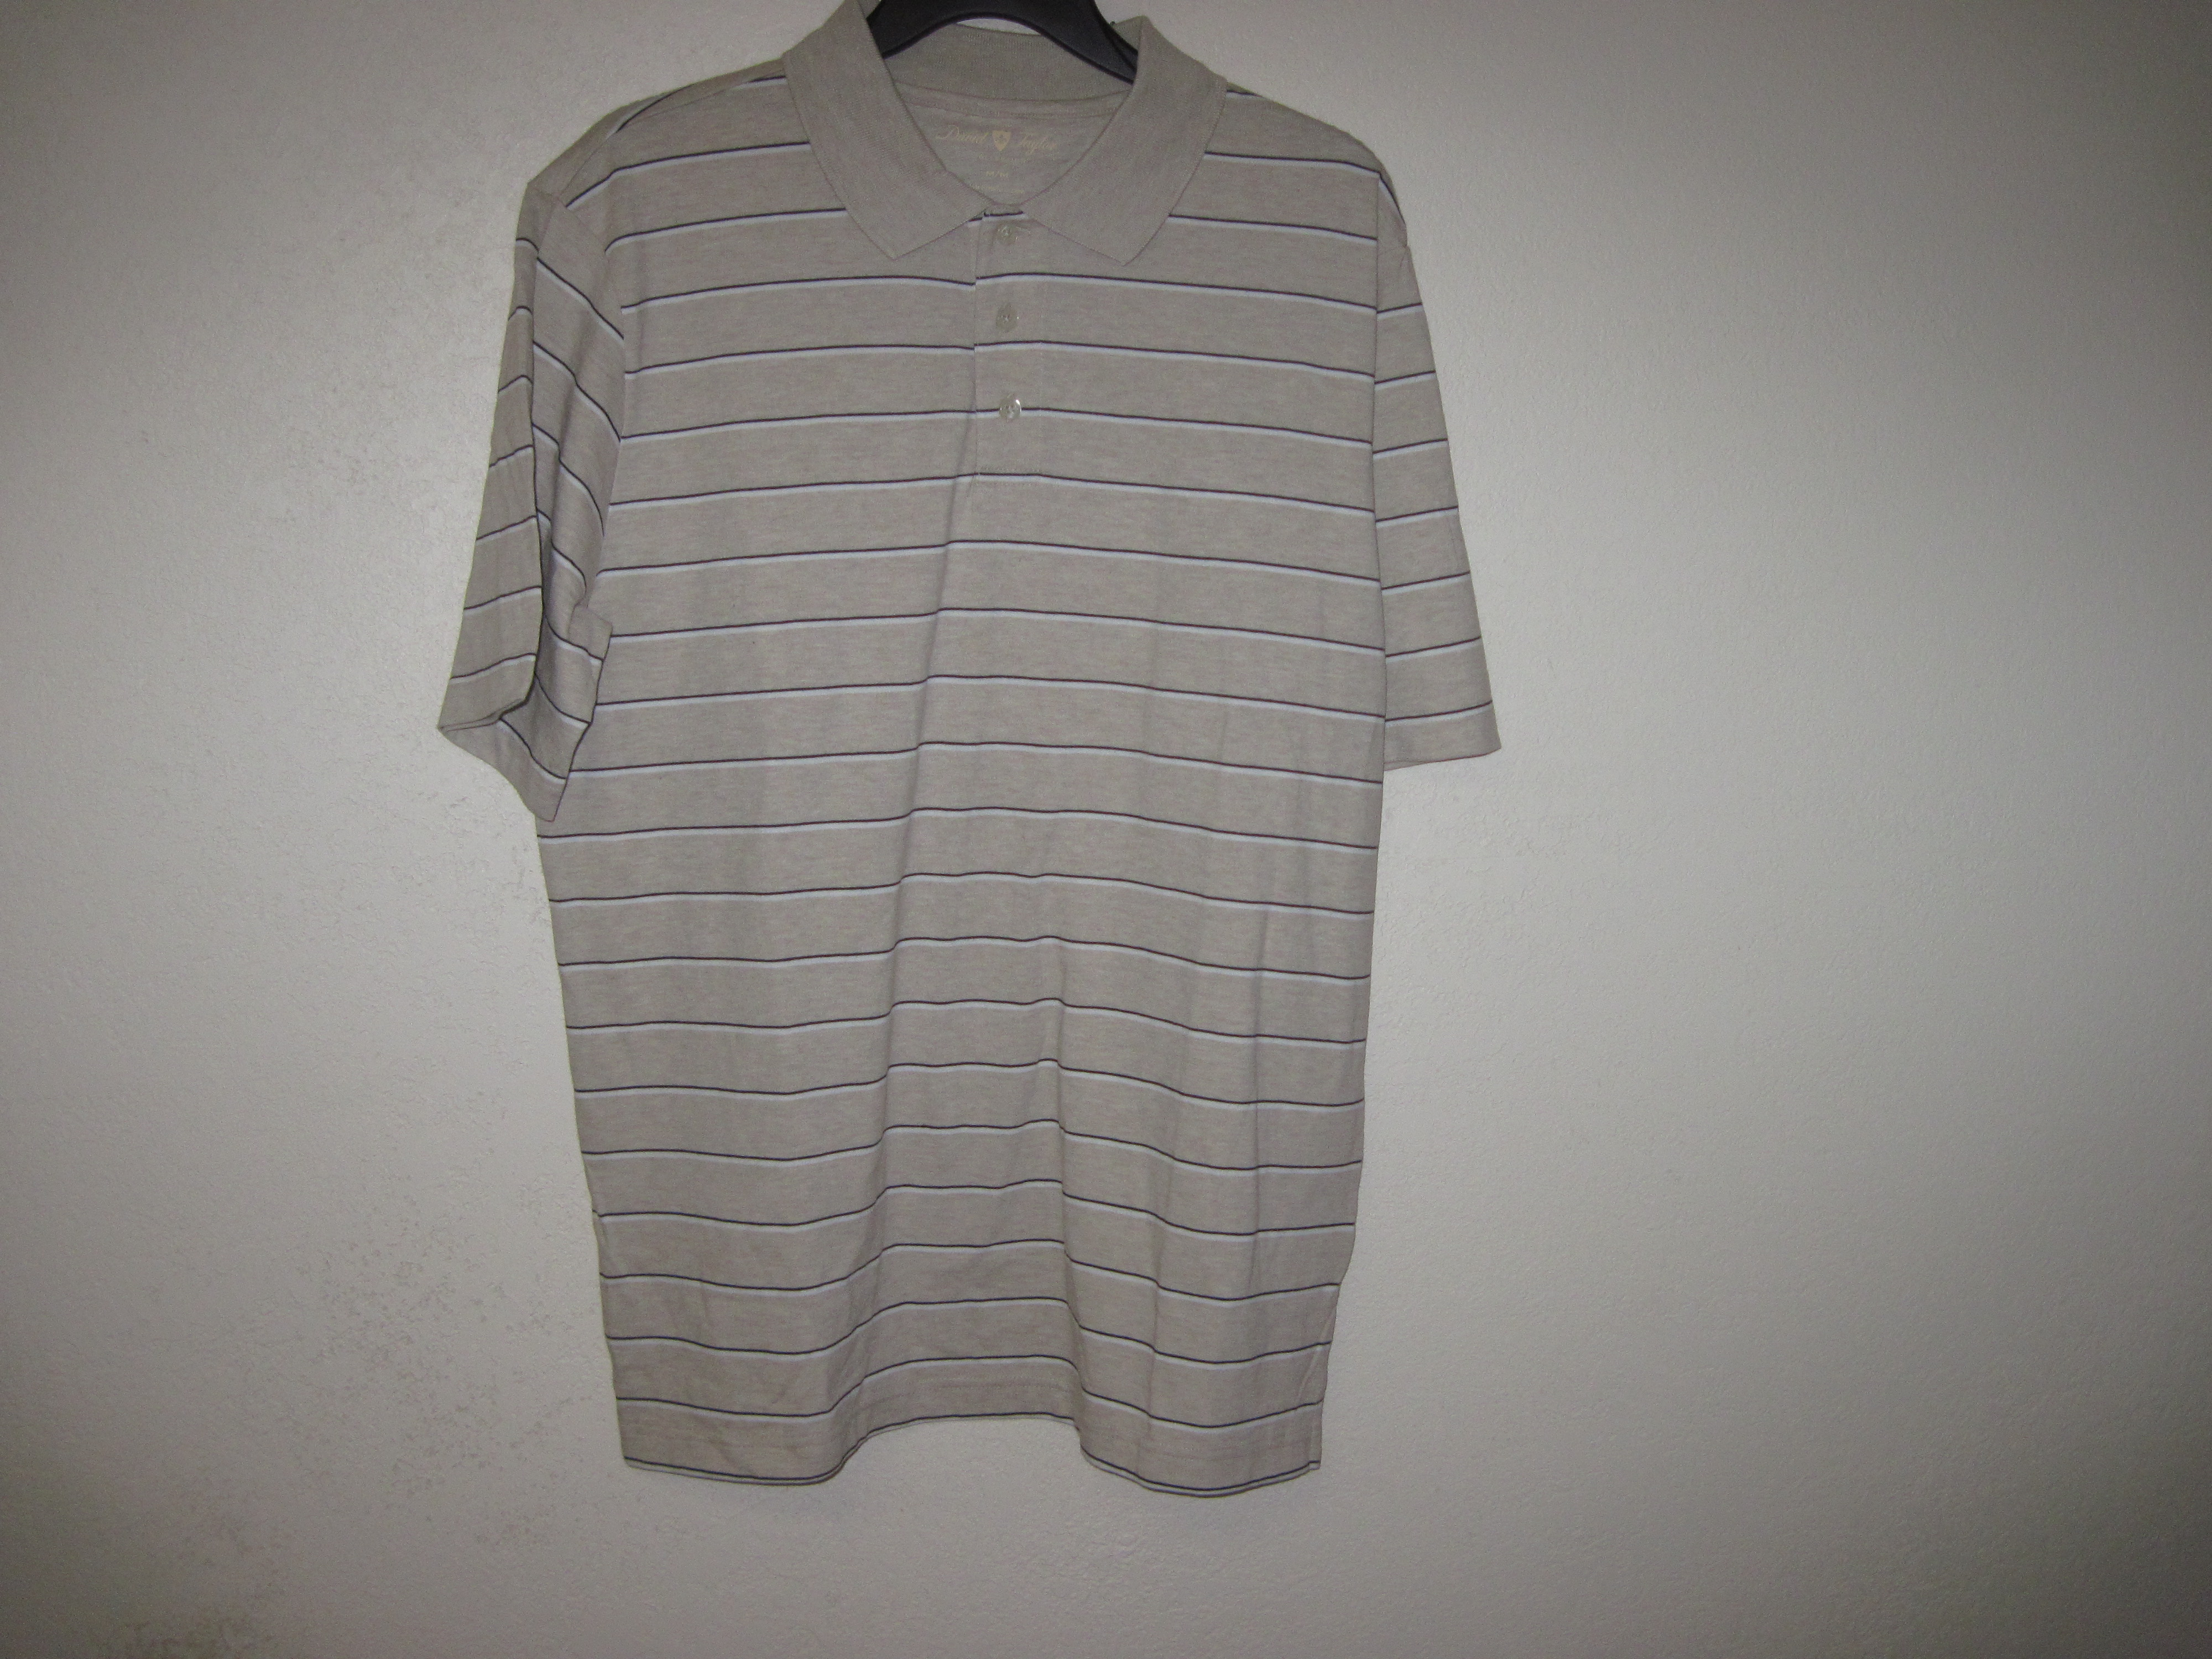 David Taylor Sz M MensNeutral Polo Shirt (Tan,Black,White